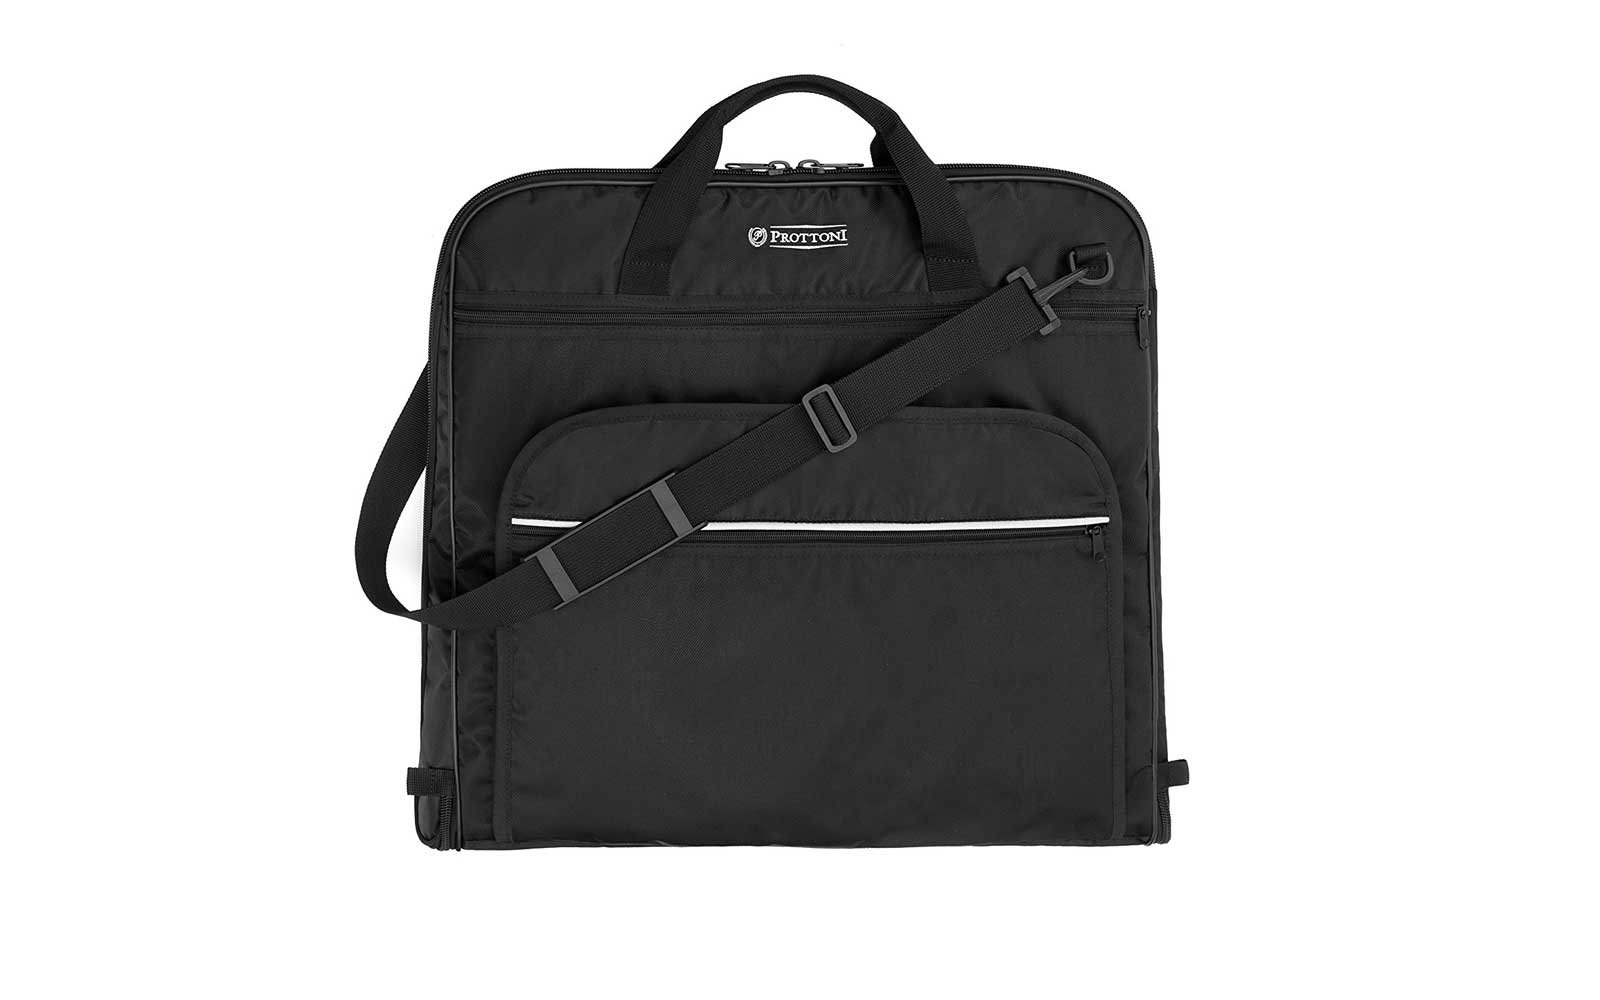 The Best Garment Bags for Travel | Travel + Leisure